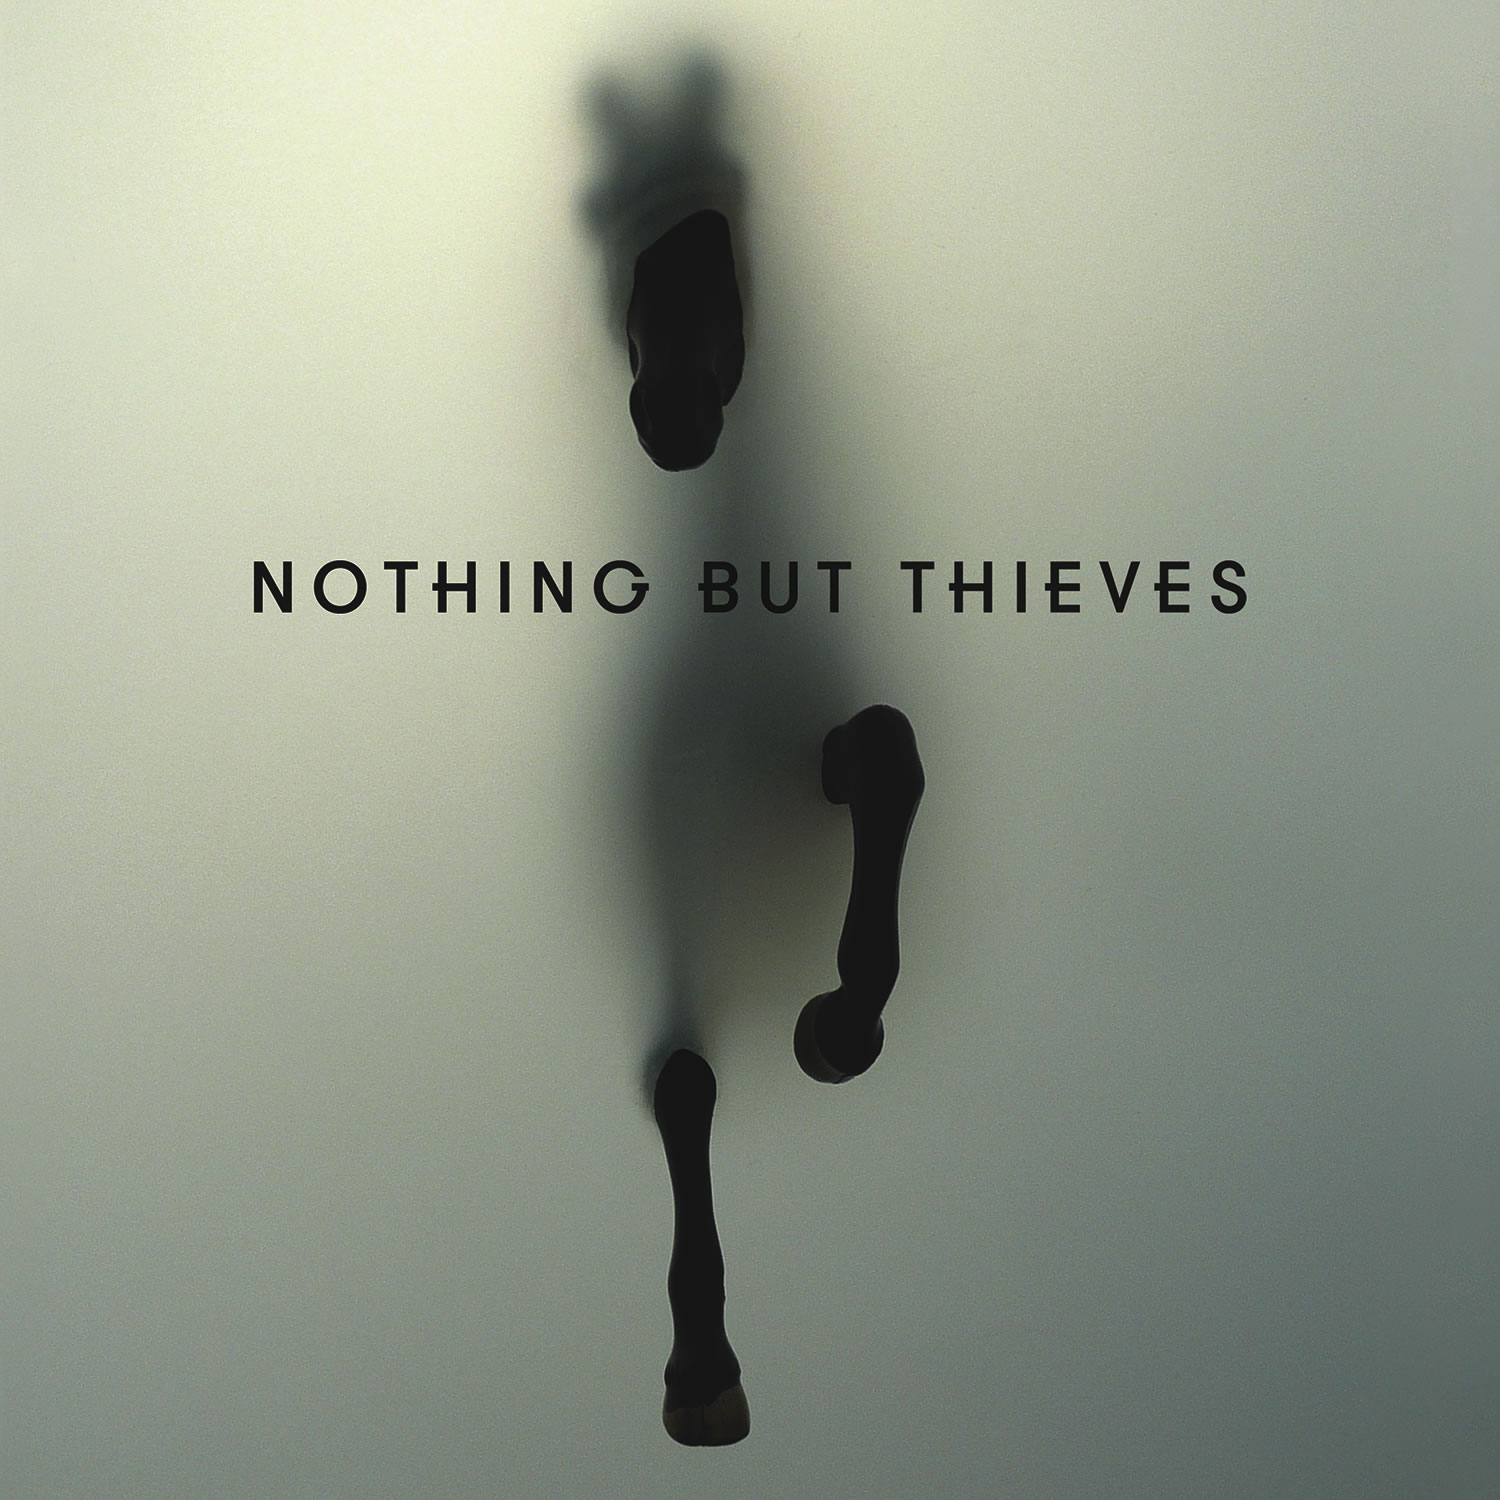 Nothing But Thieves artwork